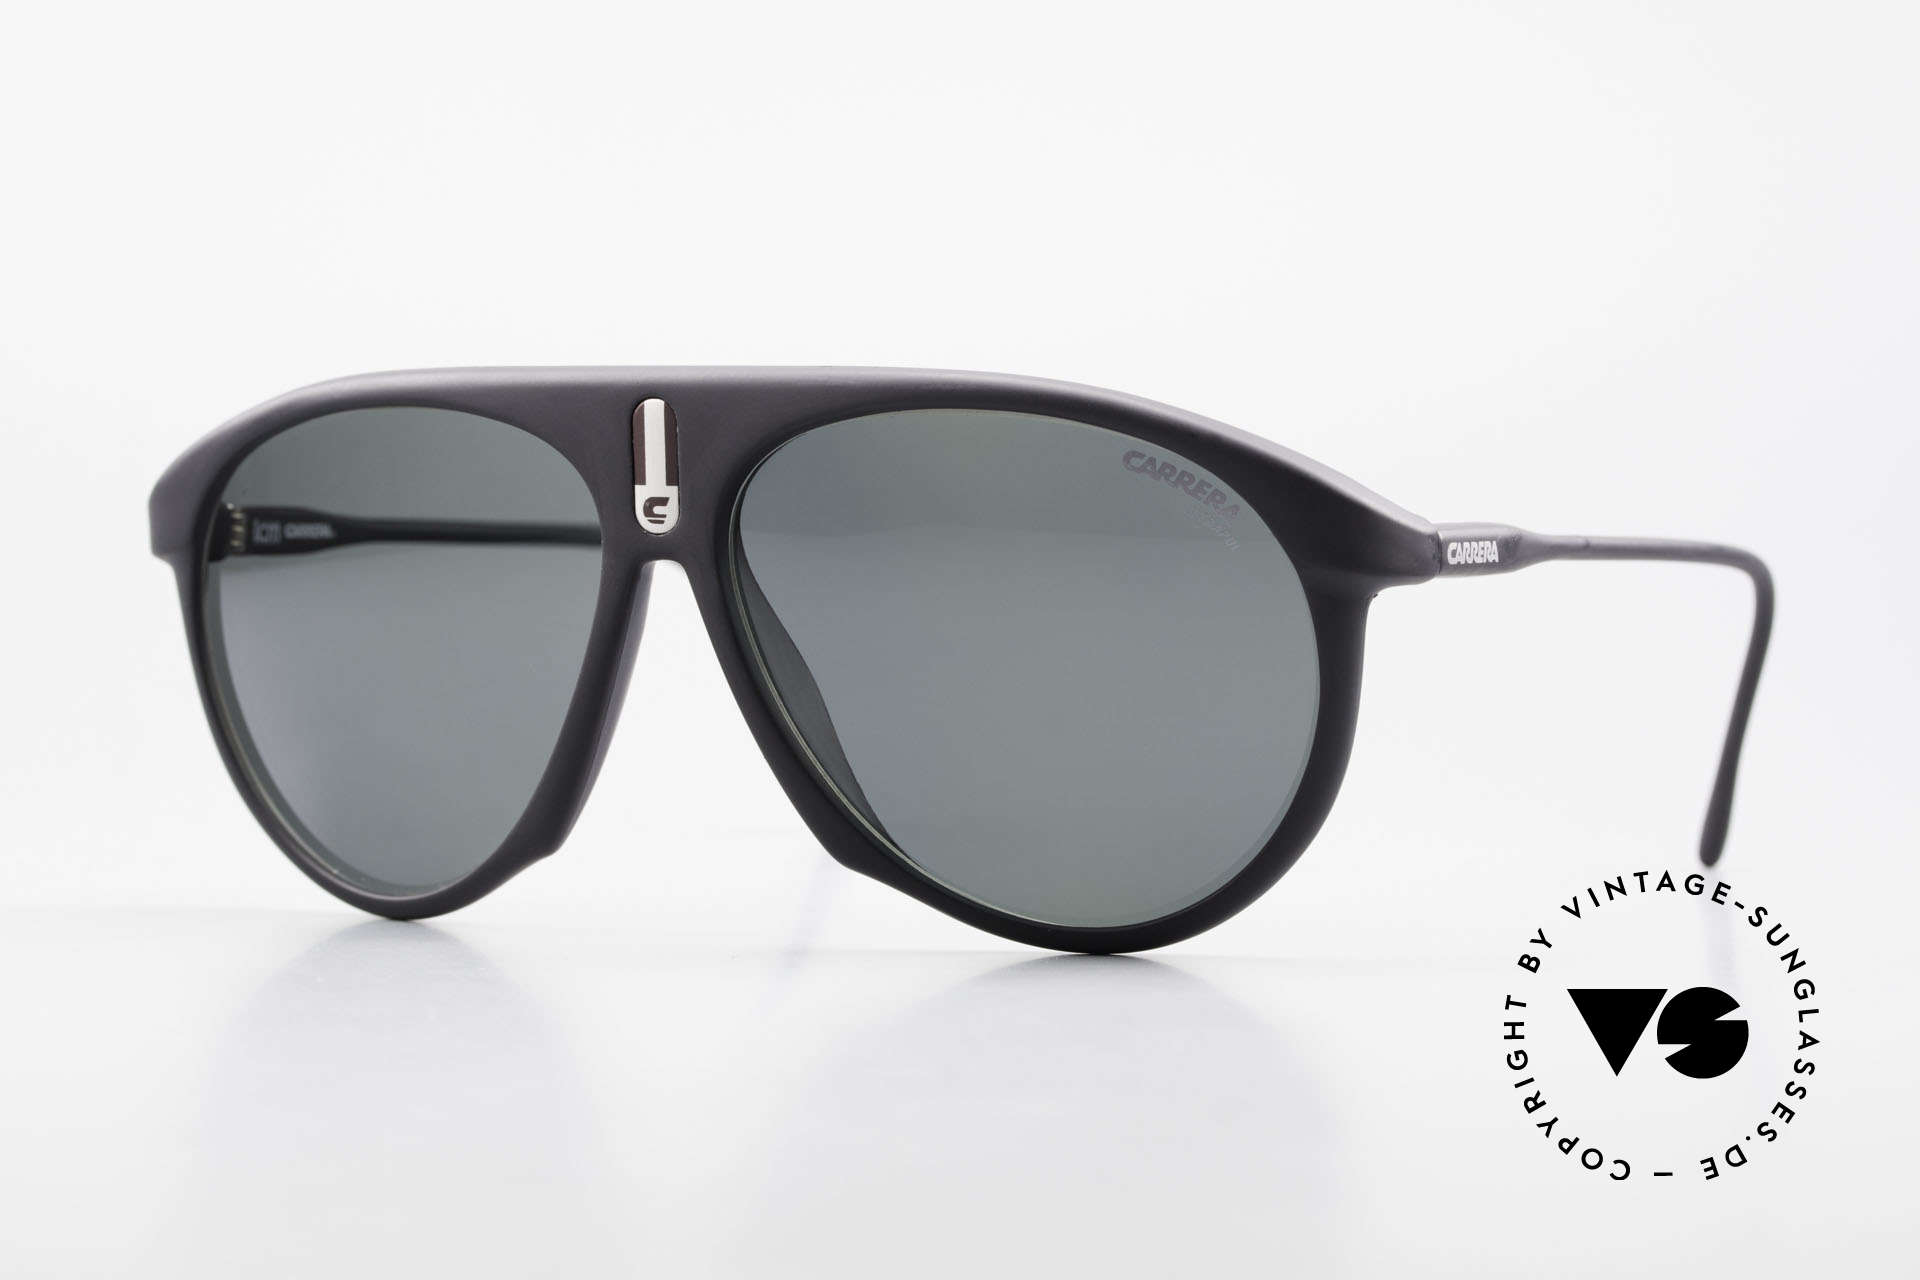 Carrera 5427 80's Polarized Sports Shades, Carrera '5427 Sprinter' sports shades from 1988, Made for Men and Women